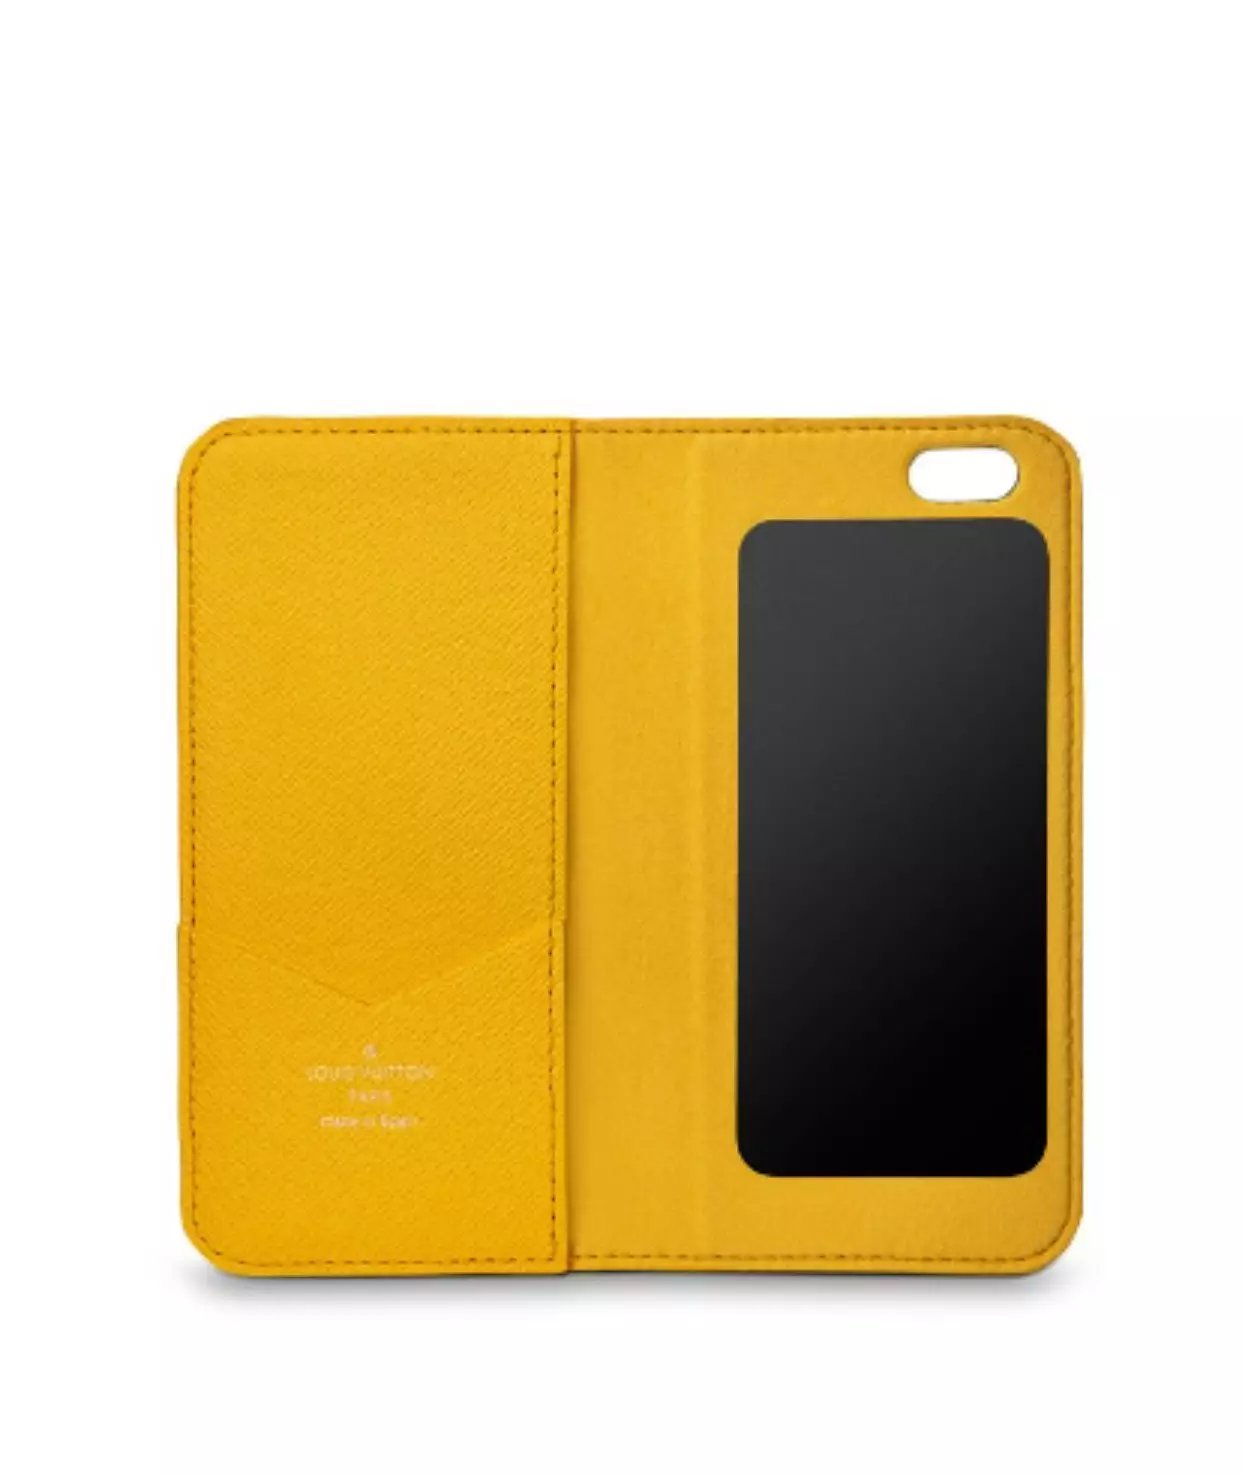 iphone case erstellen iphone hülle leder Louis Vuitton iphone6s plus hülle apple store zubehör iphone 6s Plus hülle dünn iphone display größe iphone 6s Plus hutzhülle testsieger 6s leder ca6s wann kommt der neue iphone